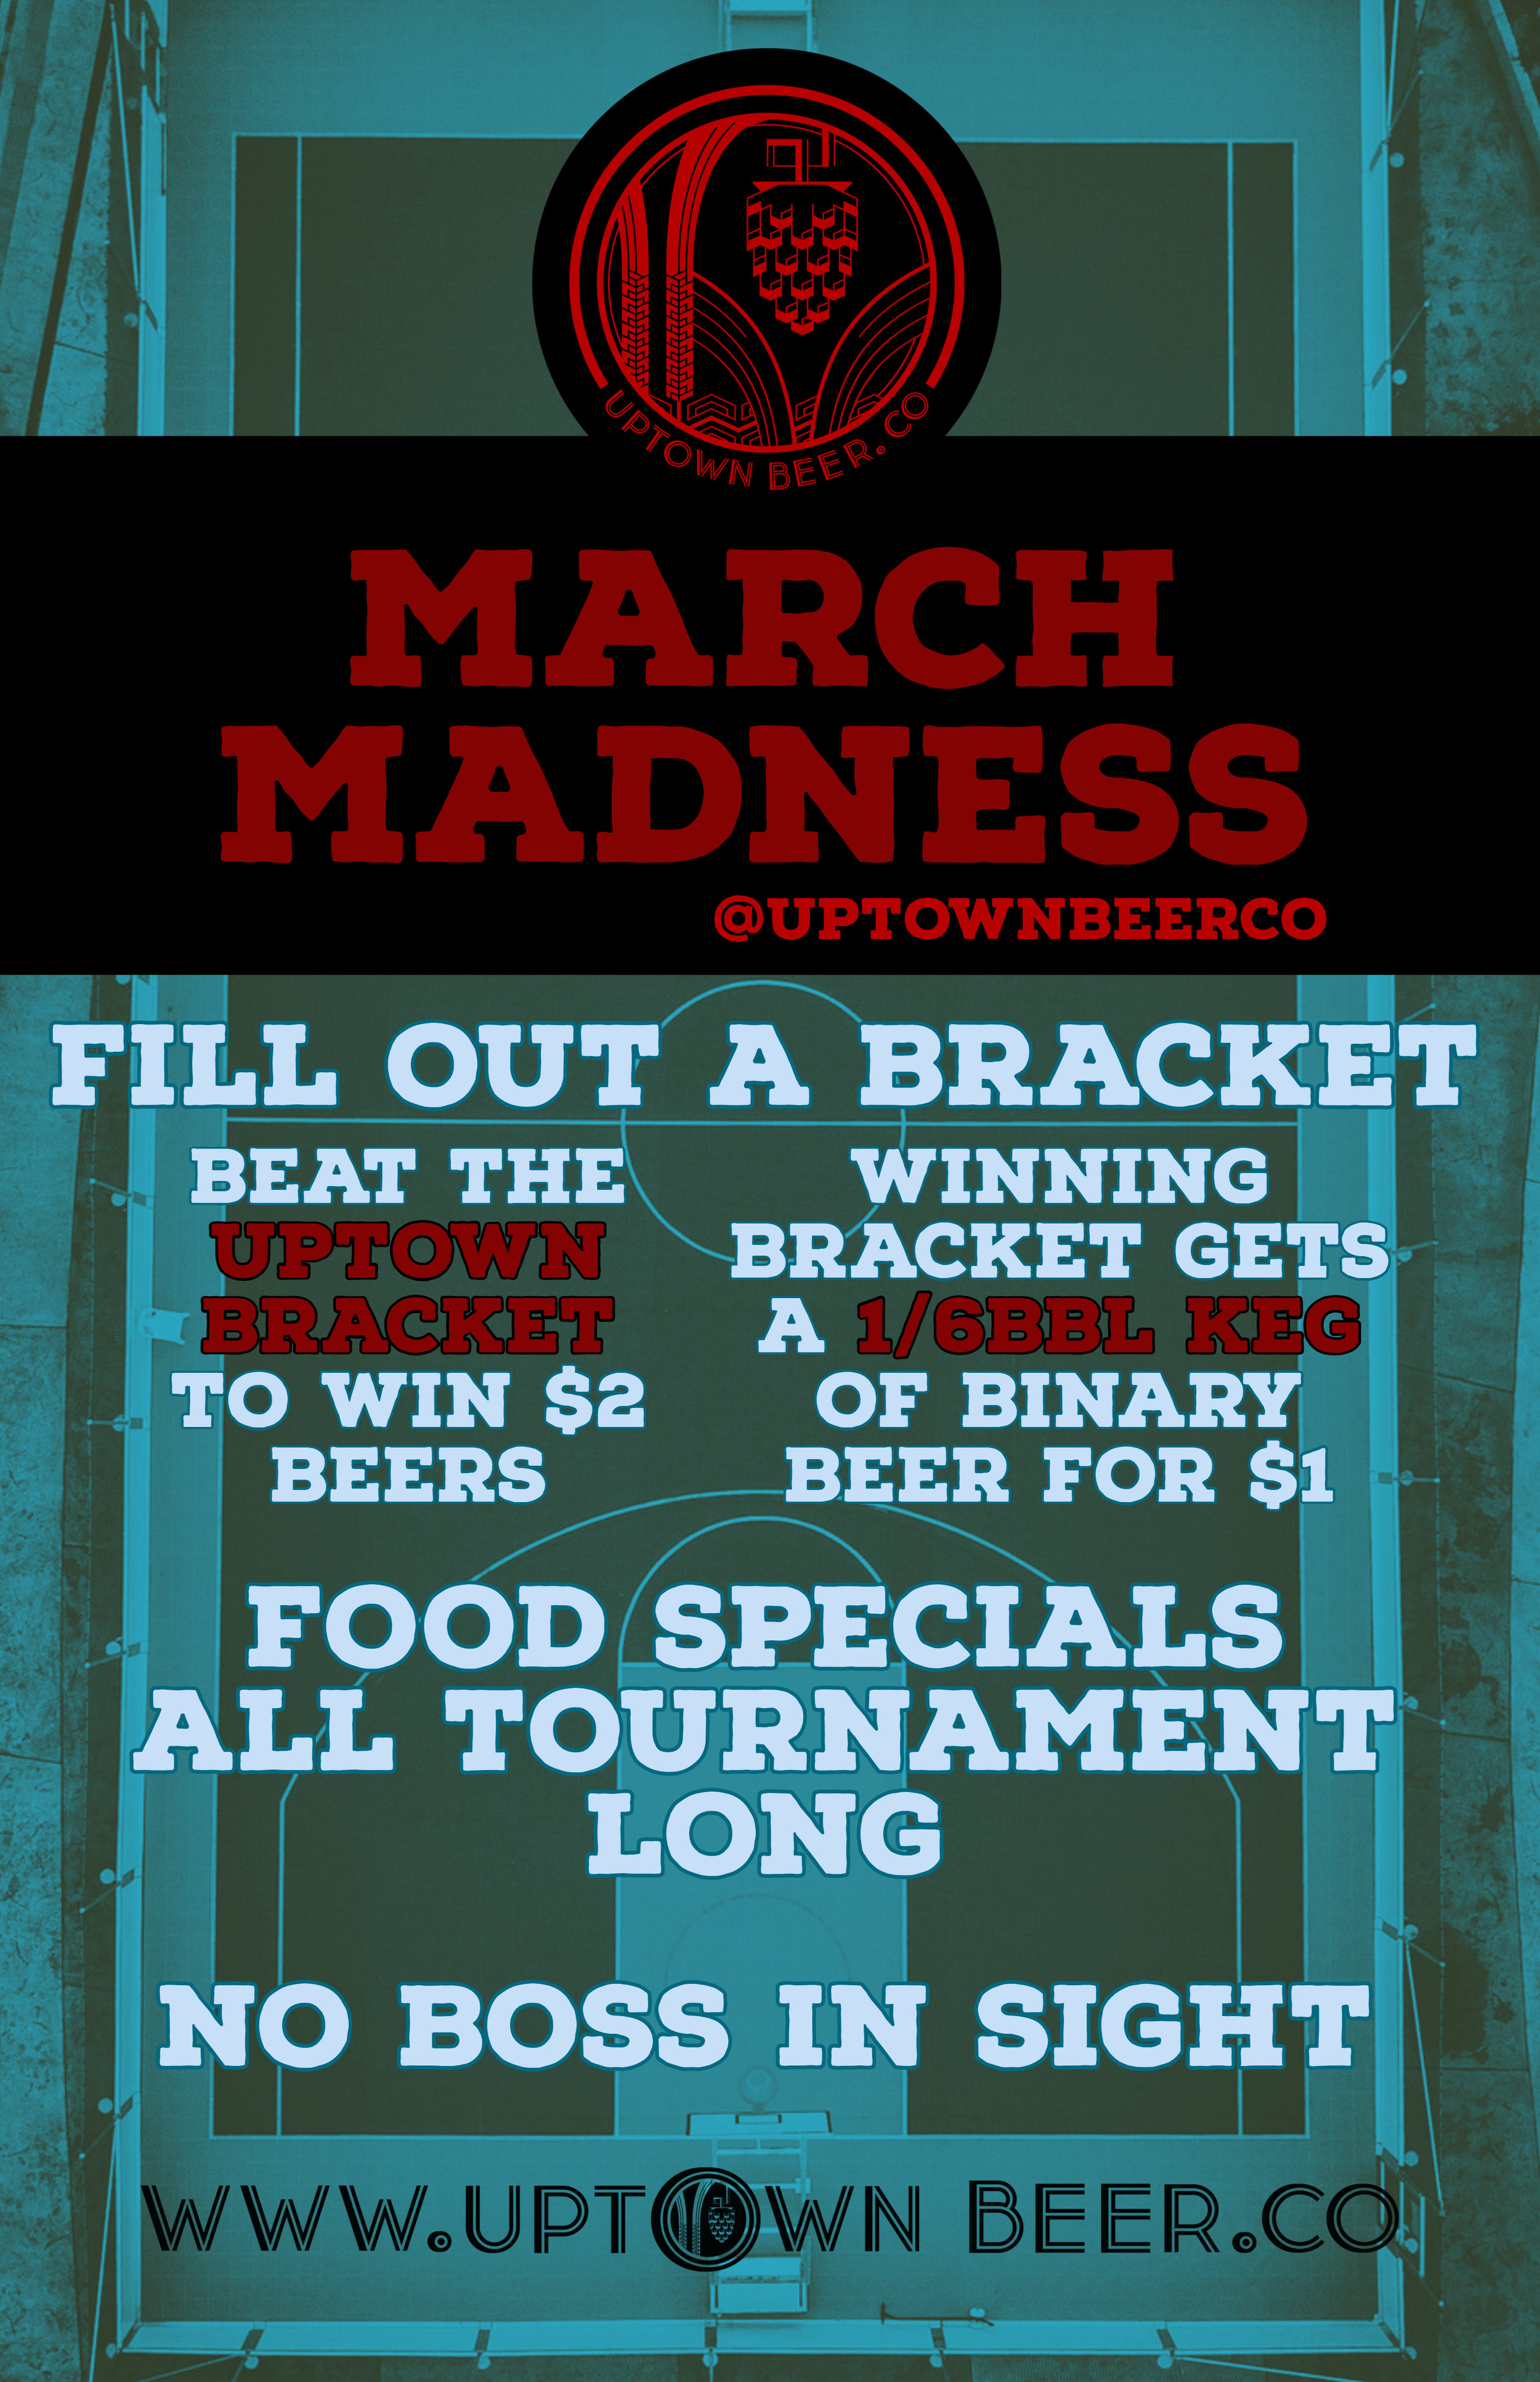 March Madness Uptown.jpg